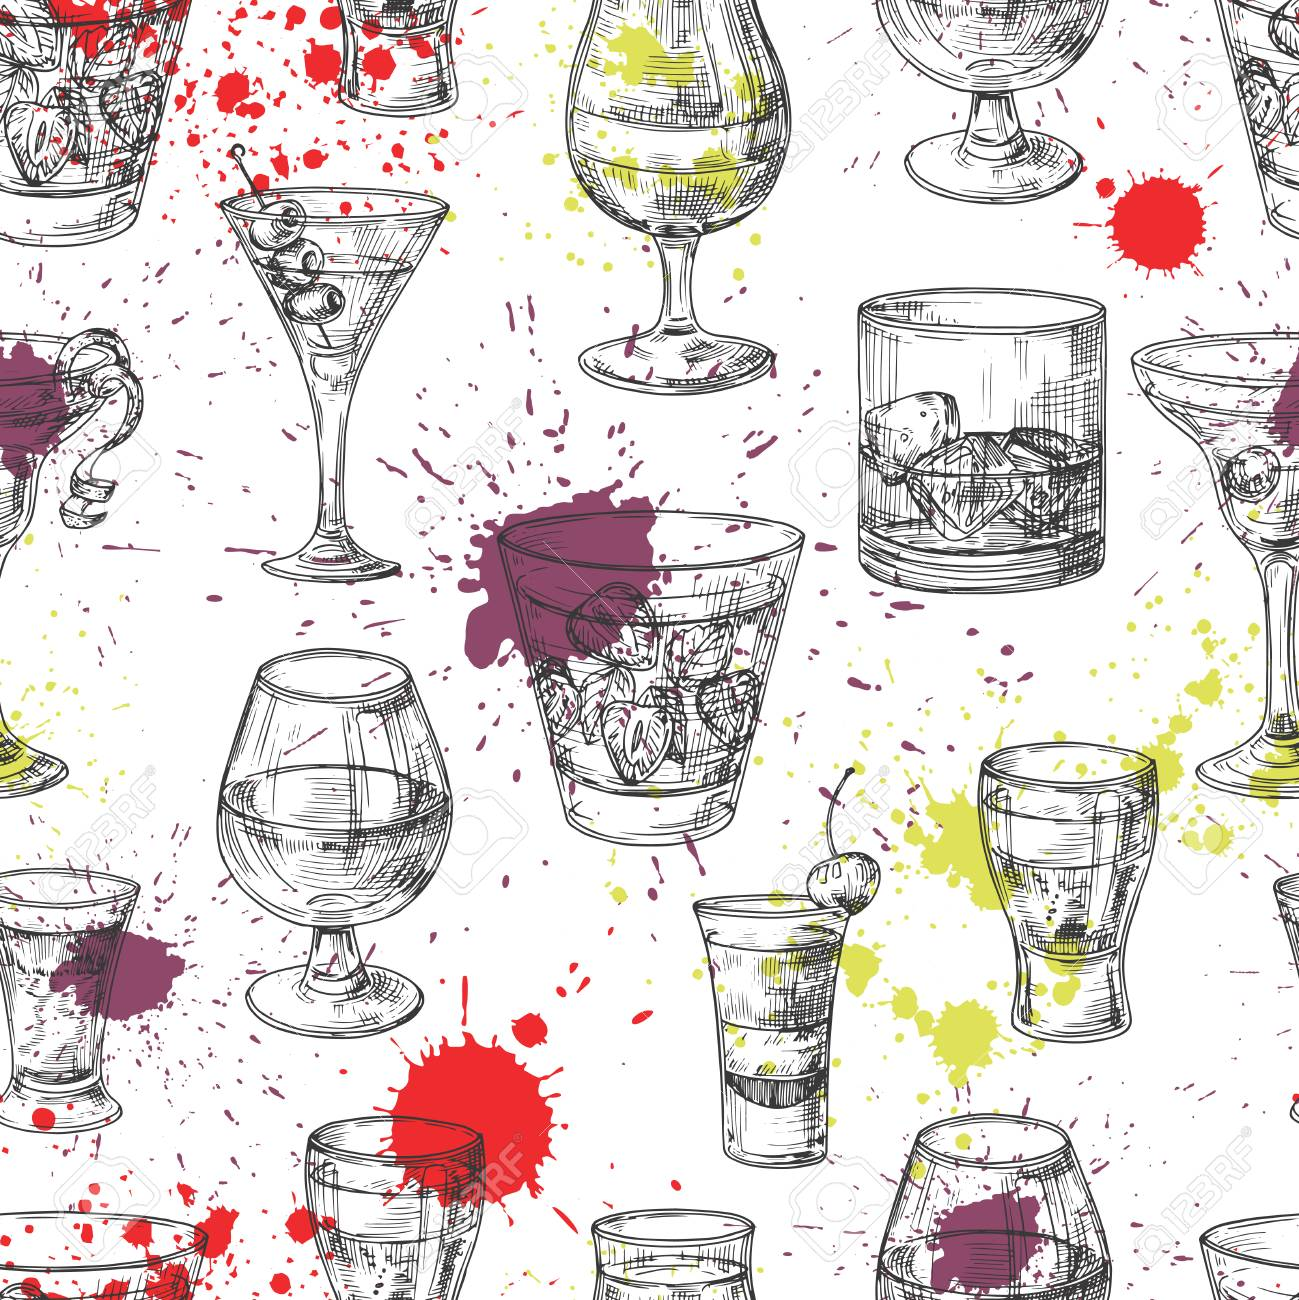 Cocktail party vector seamless pattern with hand drawn drinks and splashes. Illustration of alcohol glass drink, cocktail party - 124771053